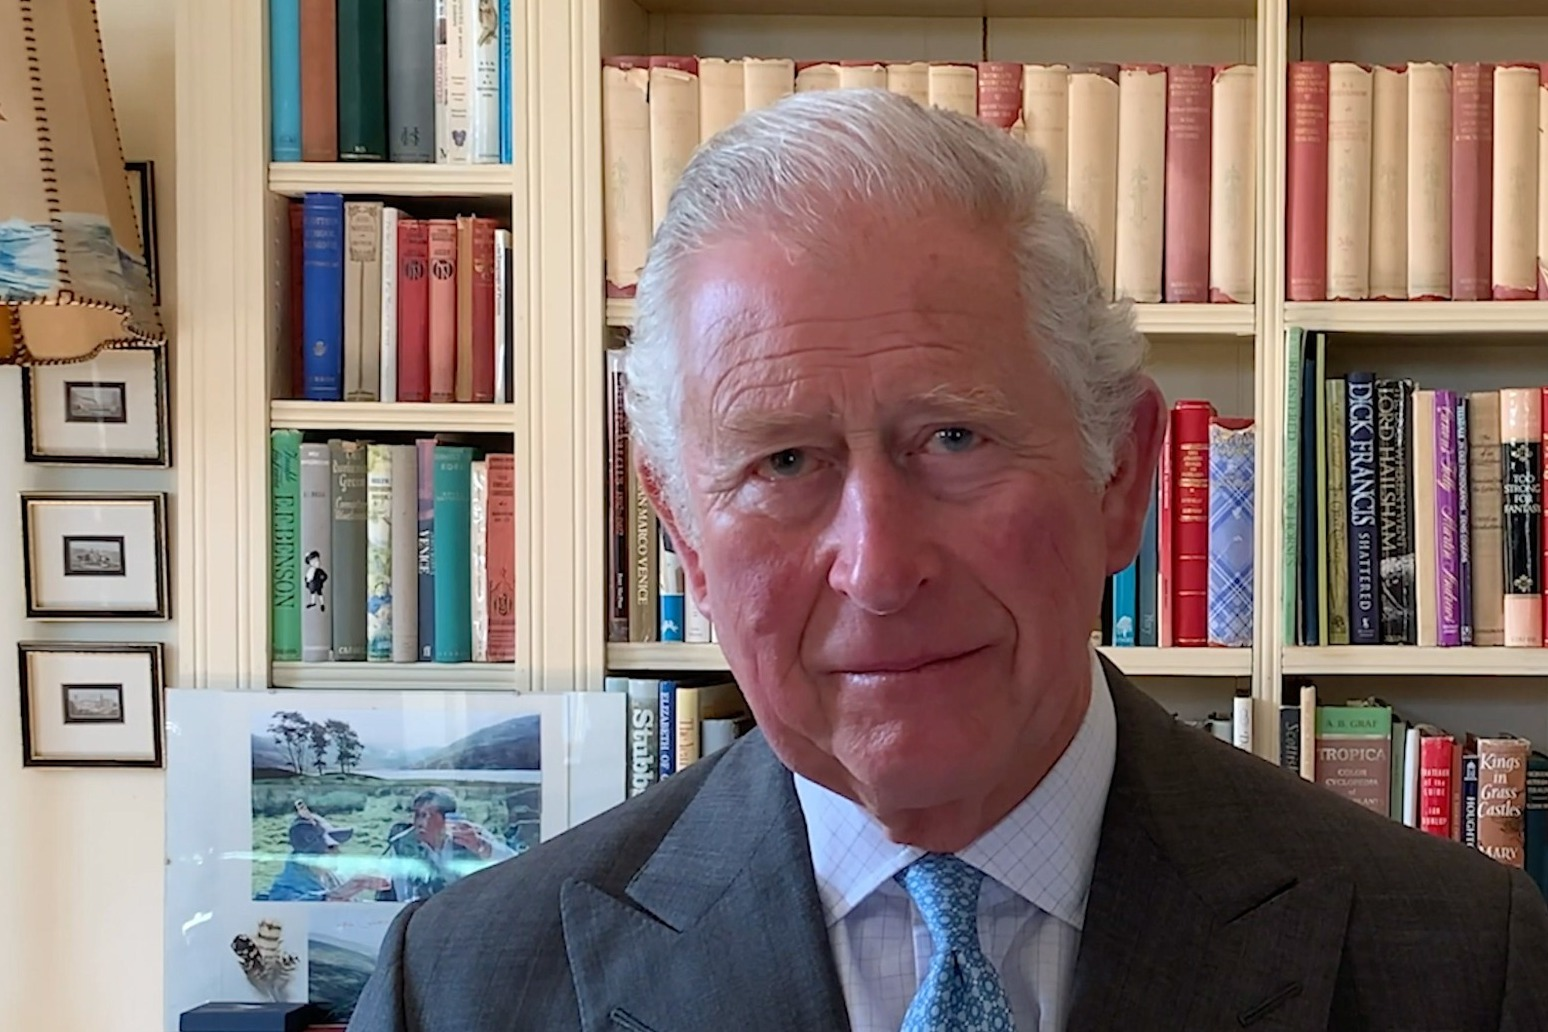 Charles warns Covid-19 could \'wreak utter havoc\' in vulnerable countries